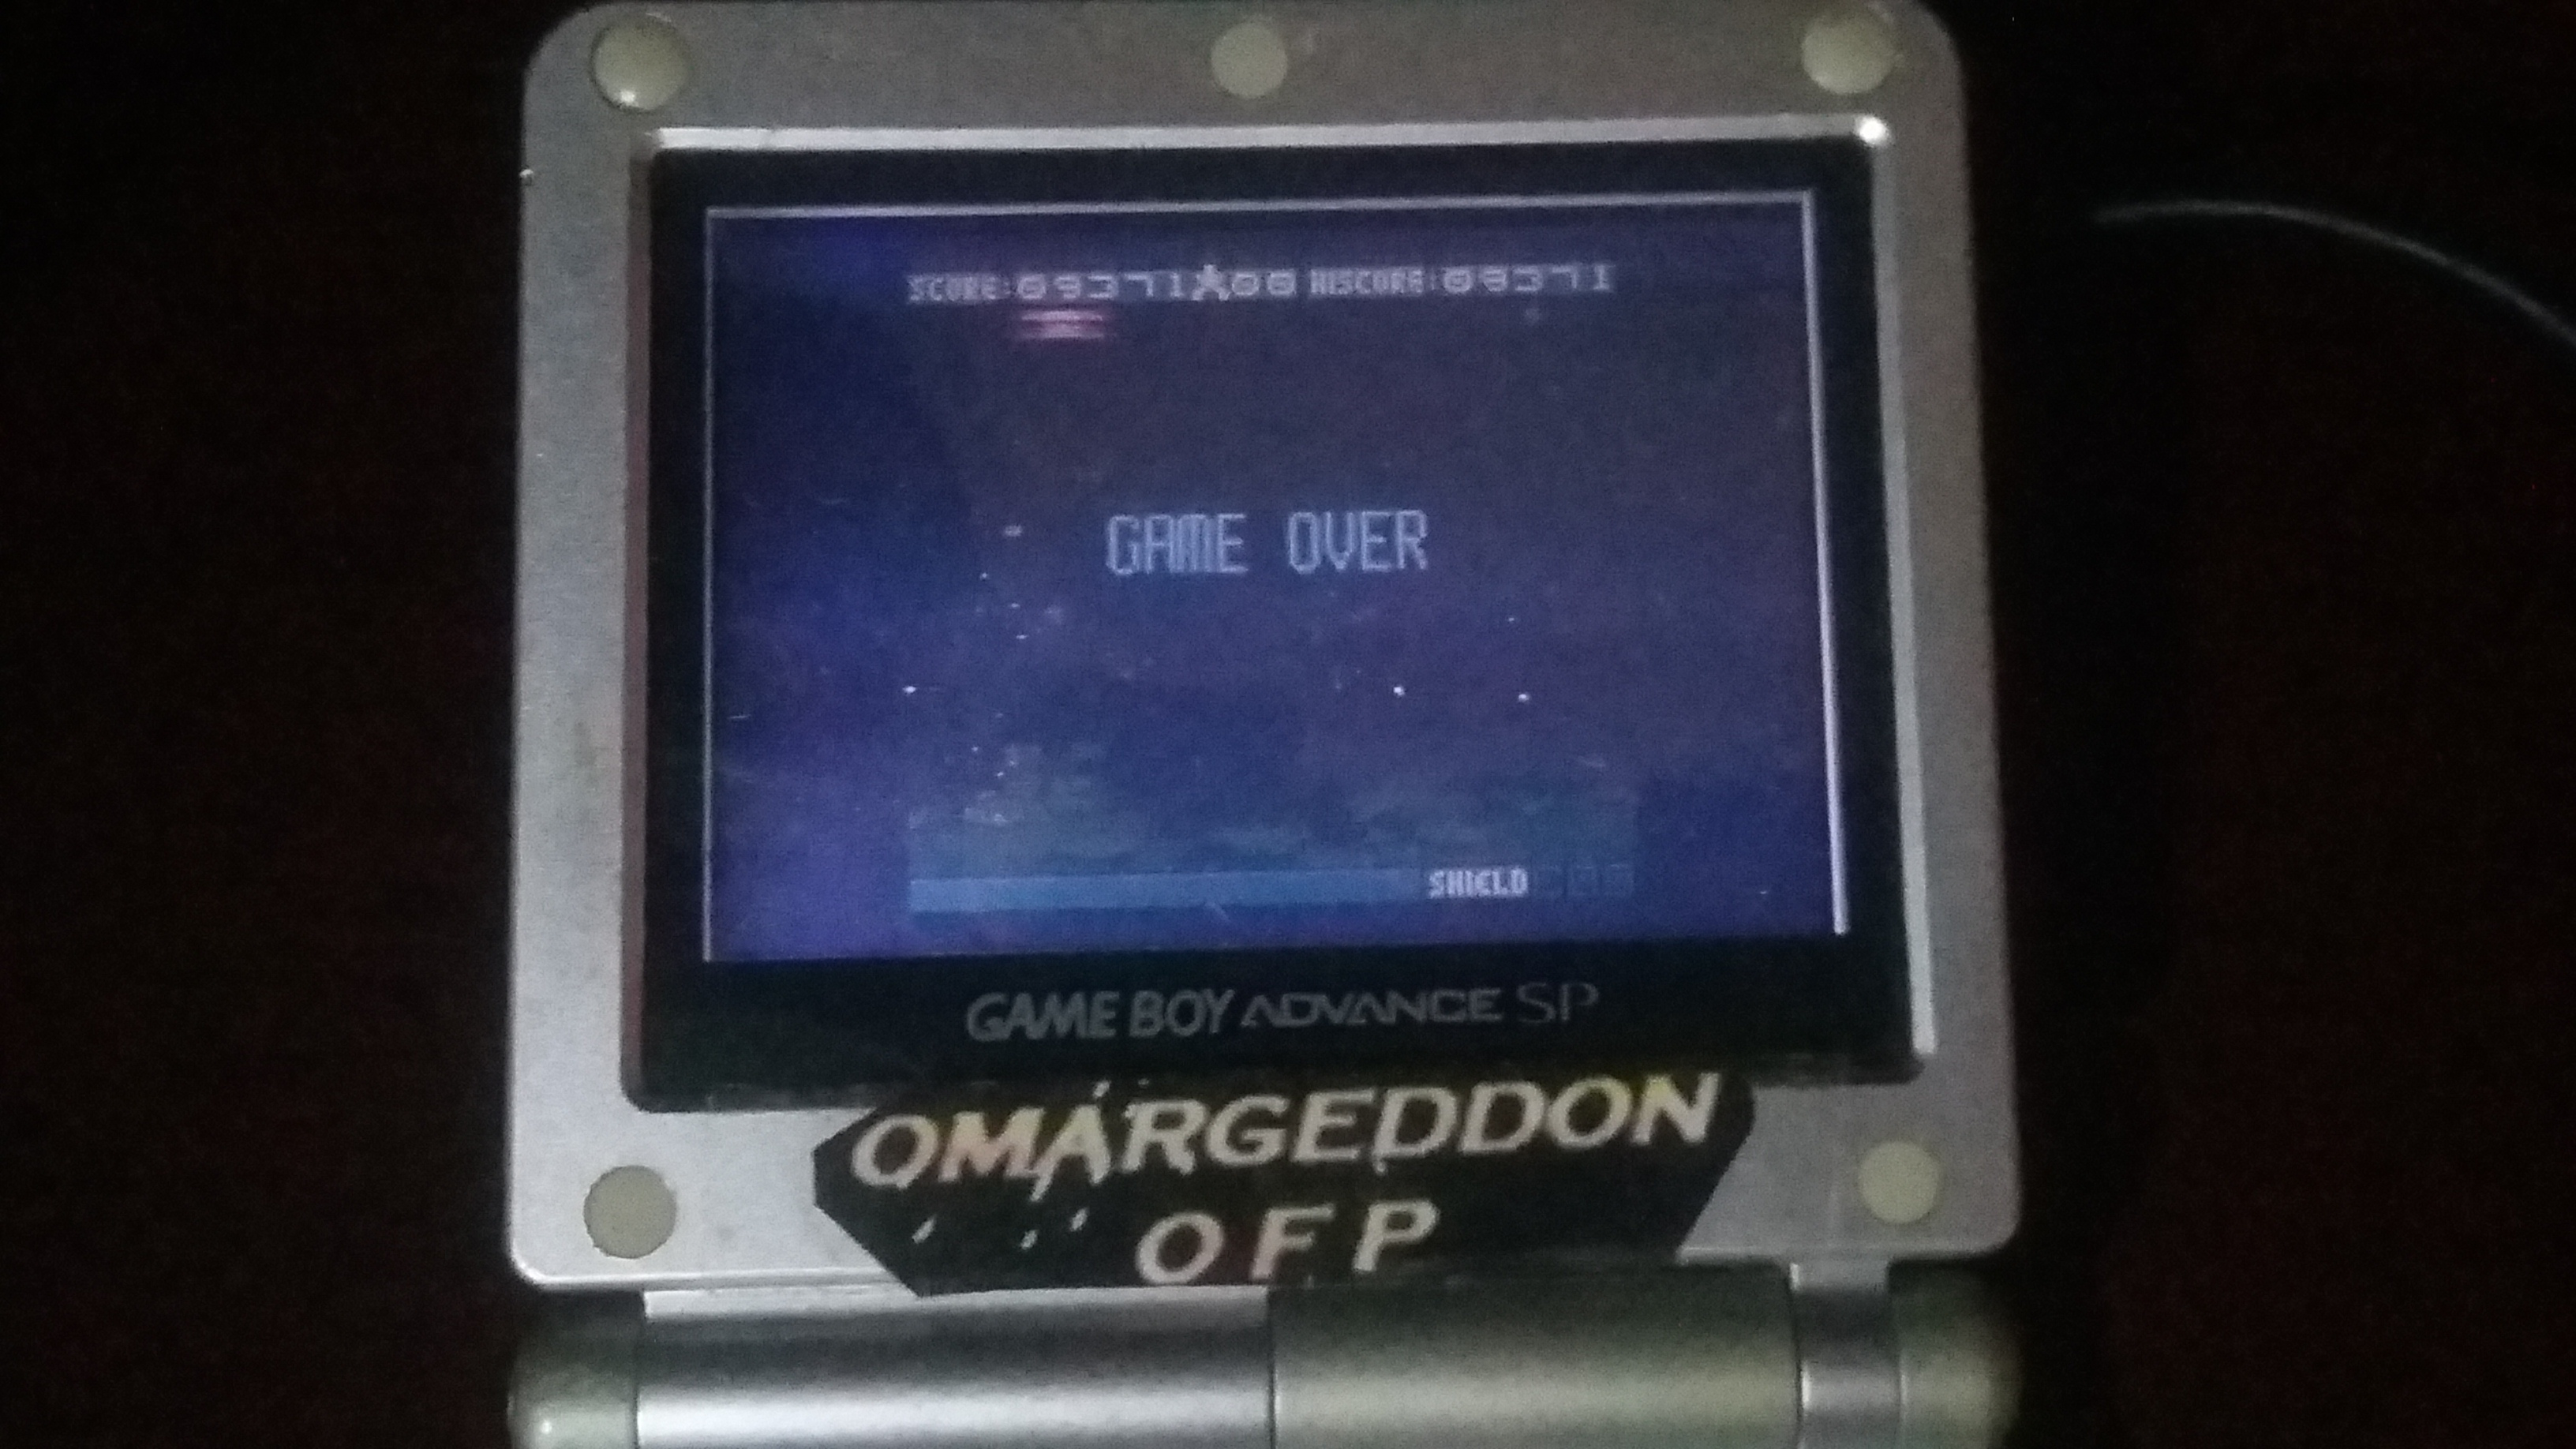 omargeddon: Space Invaders (Game Boy Color) 9,371 points on 2018-09-23 17:06:17